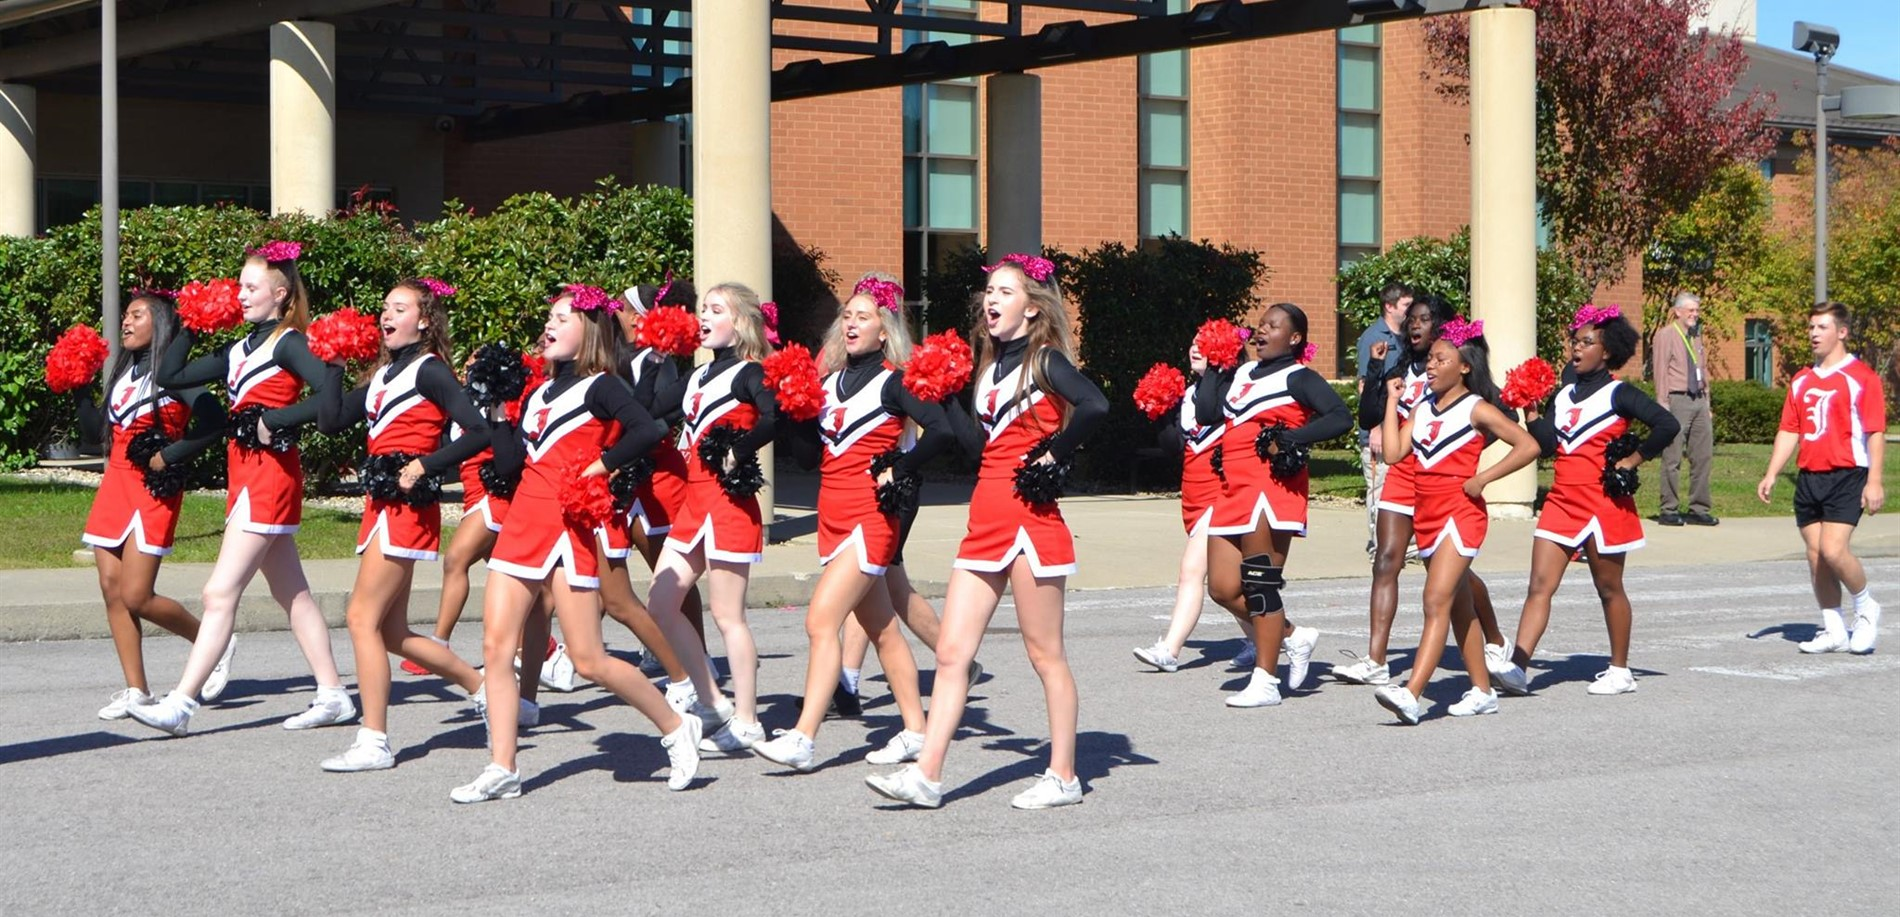 John Hardin High School cheerleaders lead the Homecoming Parade in front of school.